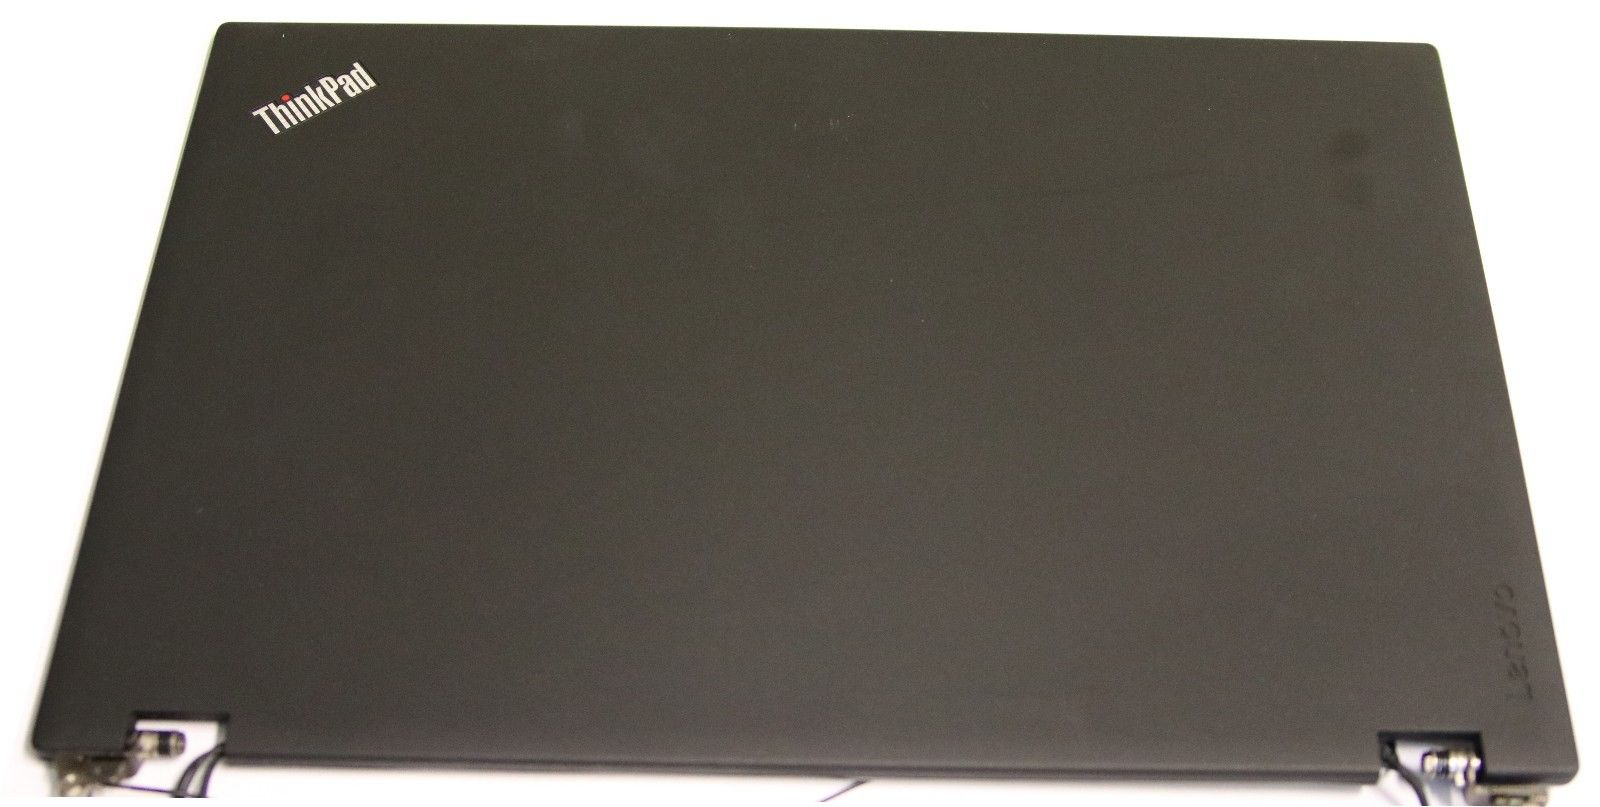 New LCD LED display assembly for Lenovo ThinkPad P50-20eq-s07t00